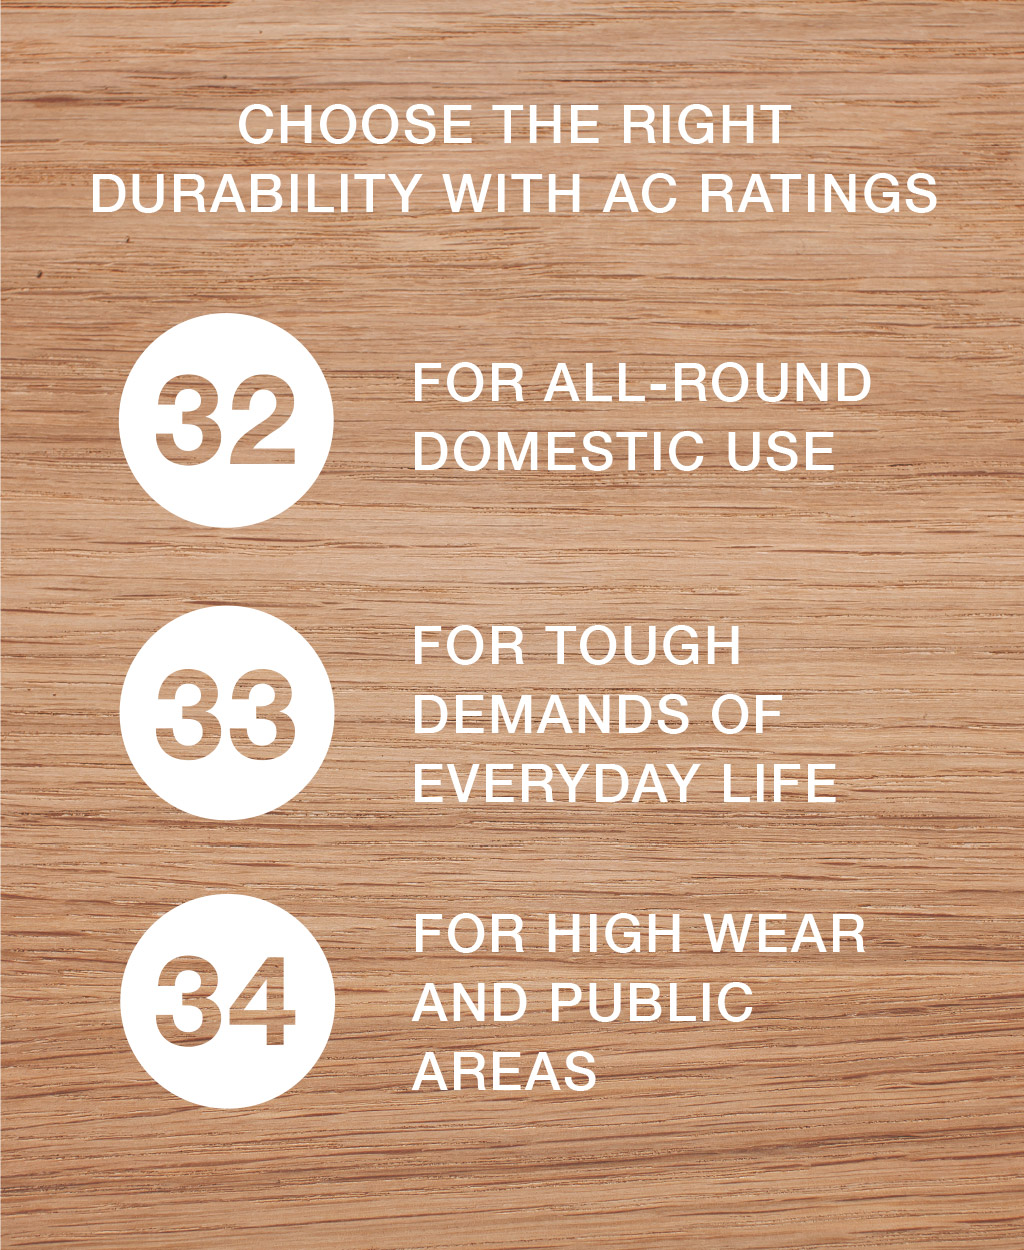 pergo-infographic-hard-wearing-oak-flooring-ac-ratings